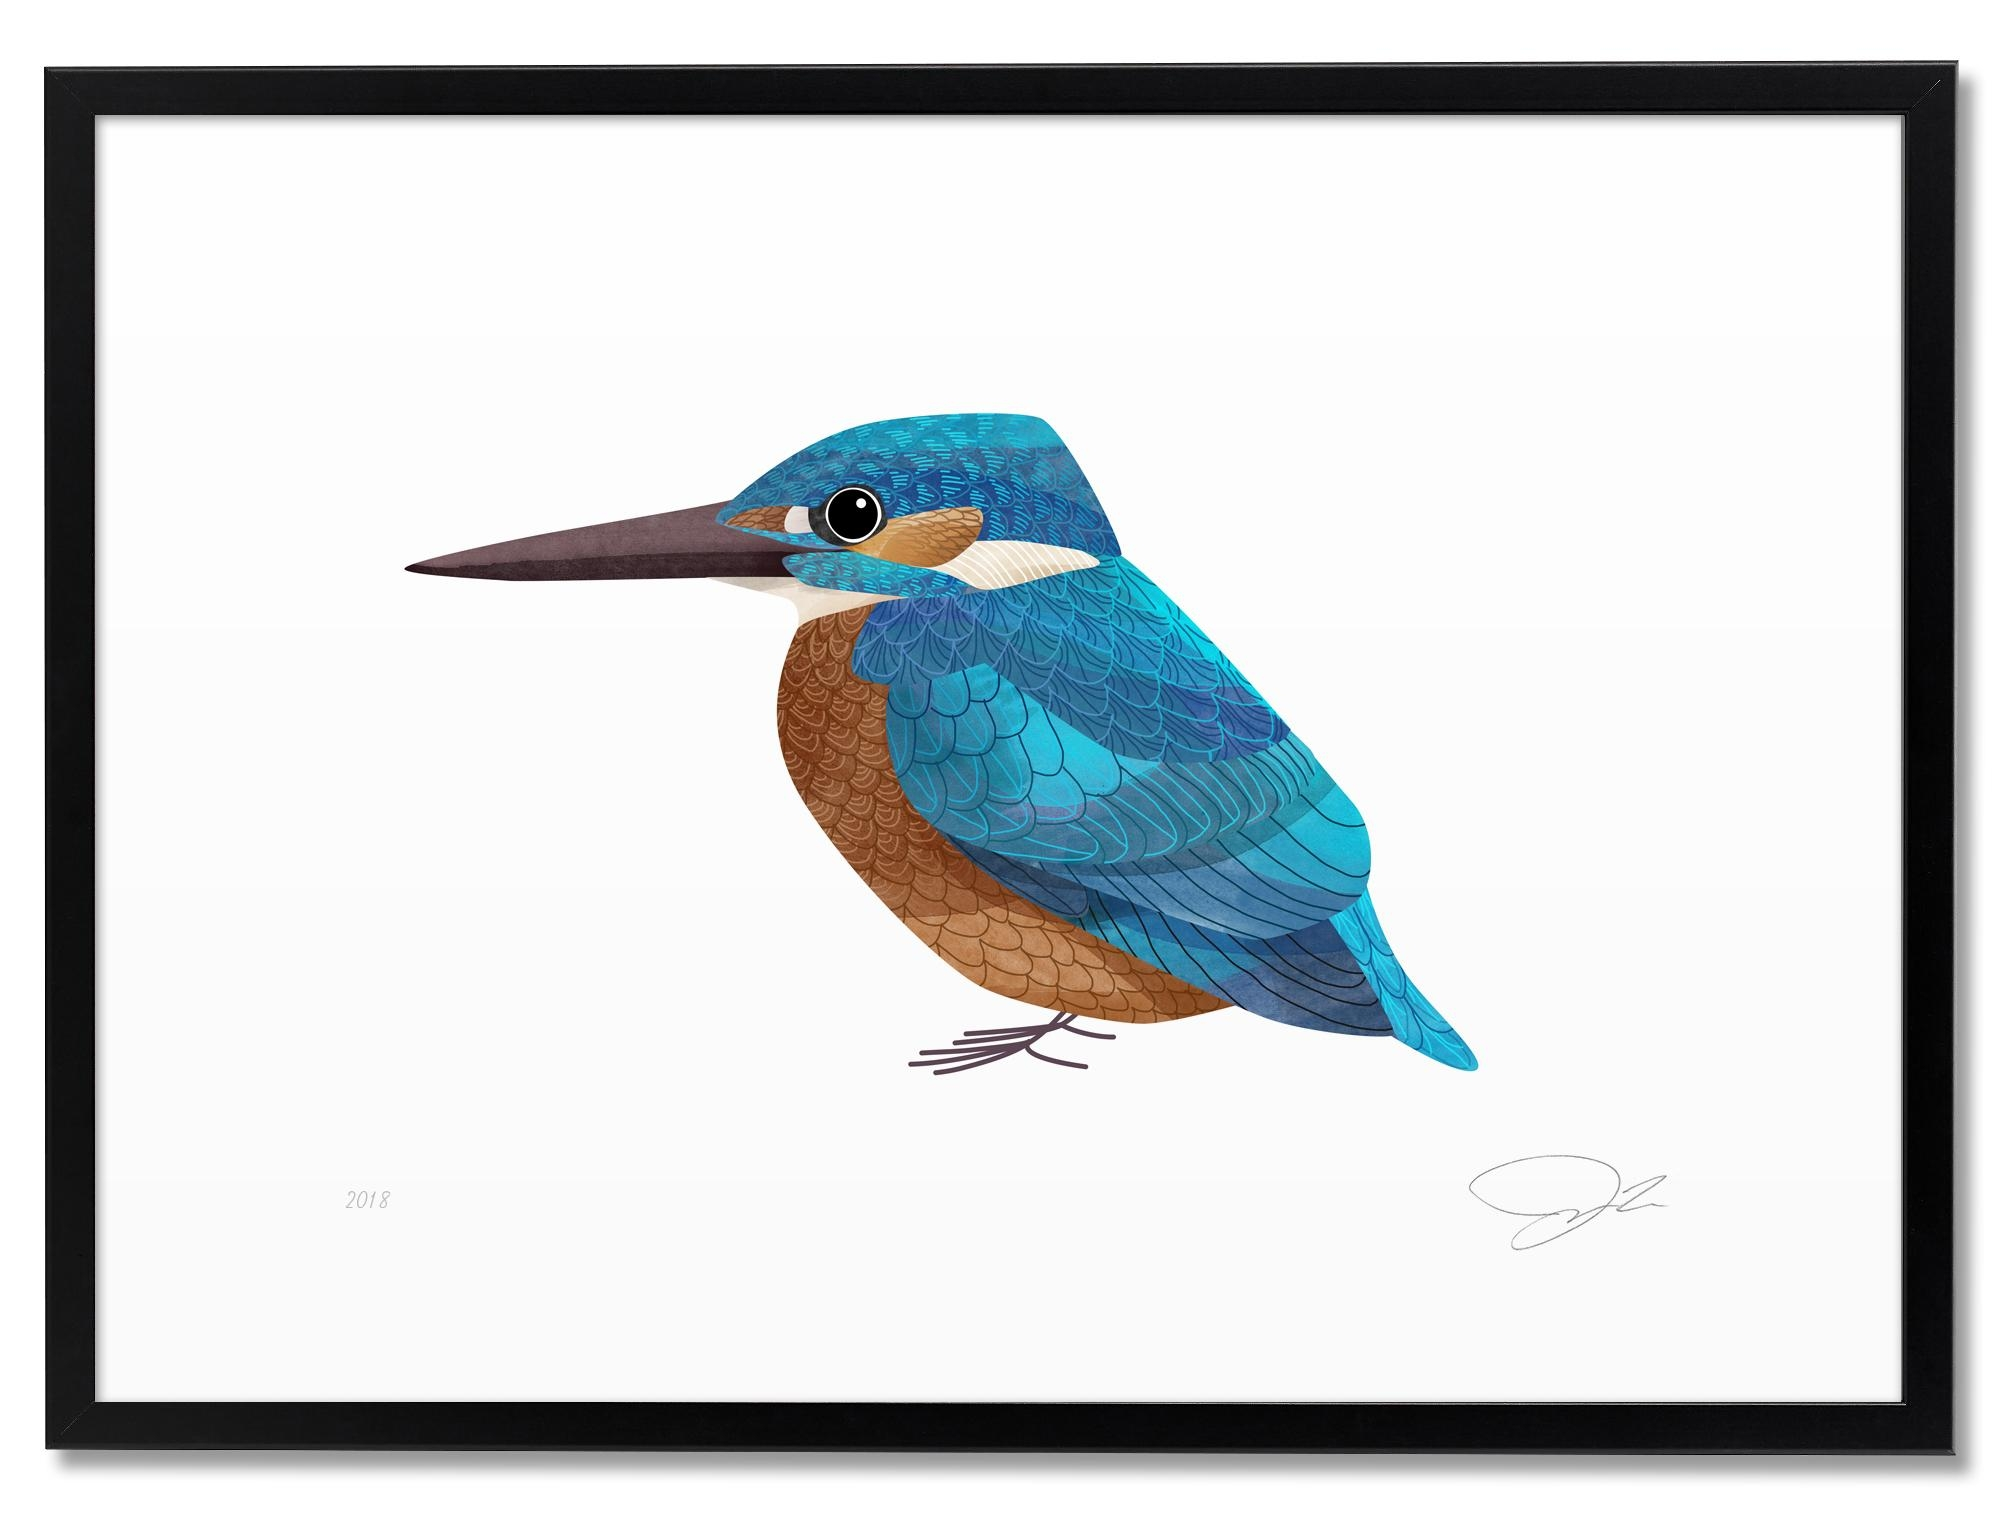 A king fisher by me. One of my favourite birds. You can see them in the ponds near home. #illustration #prints #drucke